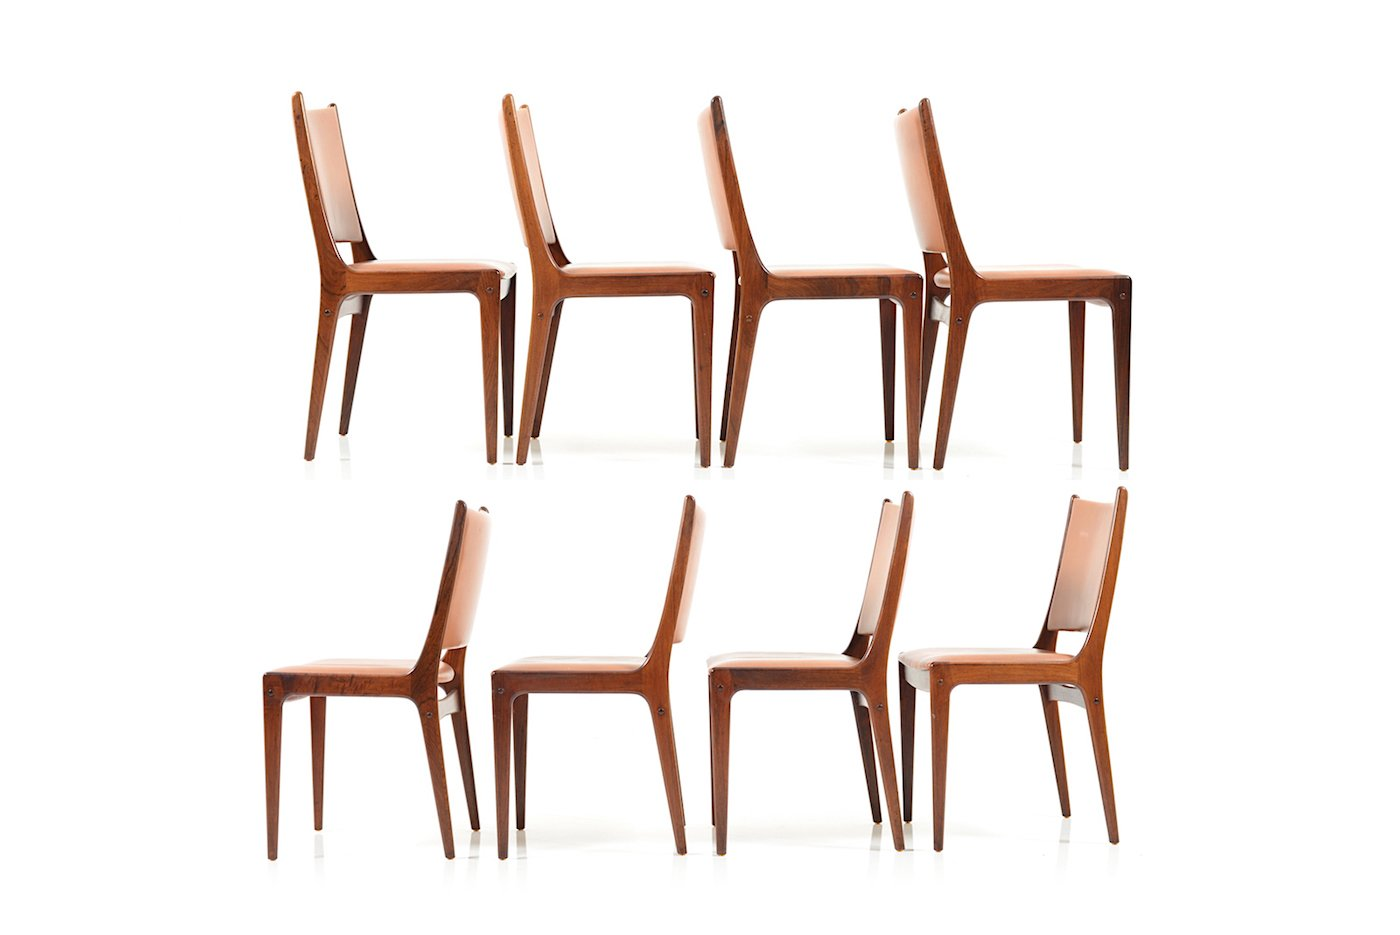 Rosewood Dining Chairs By Johannes Andersen For Uldum Møbelfabrik 1960s Set Of 6